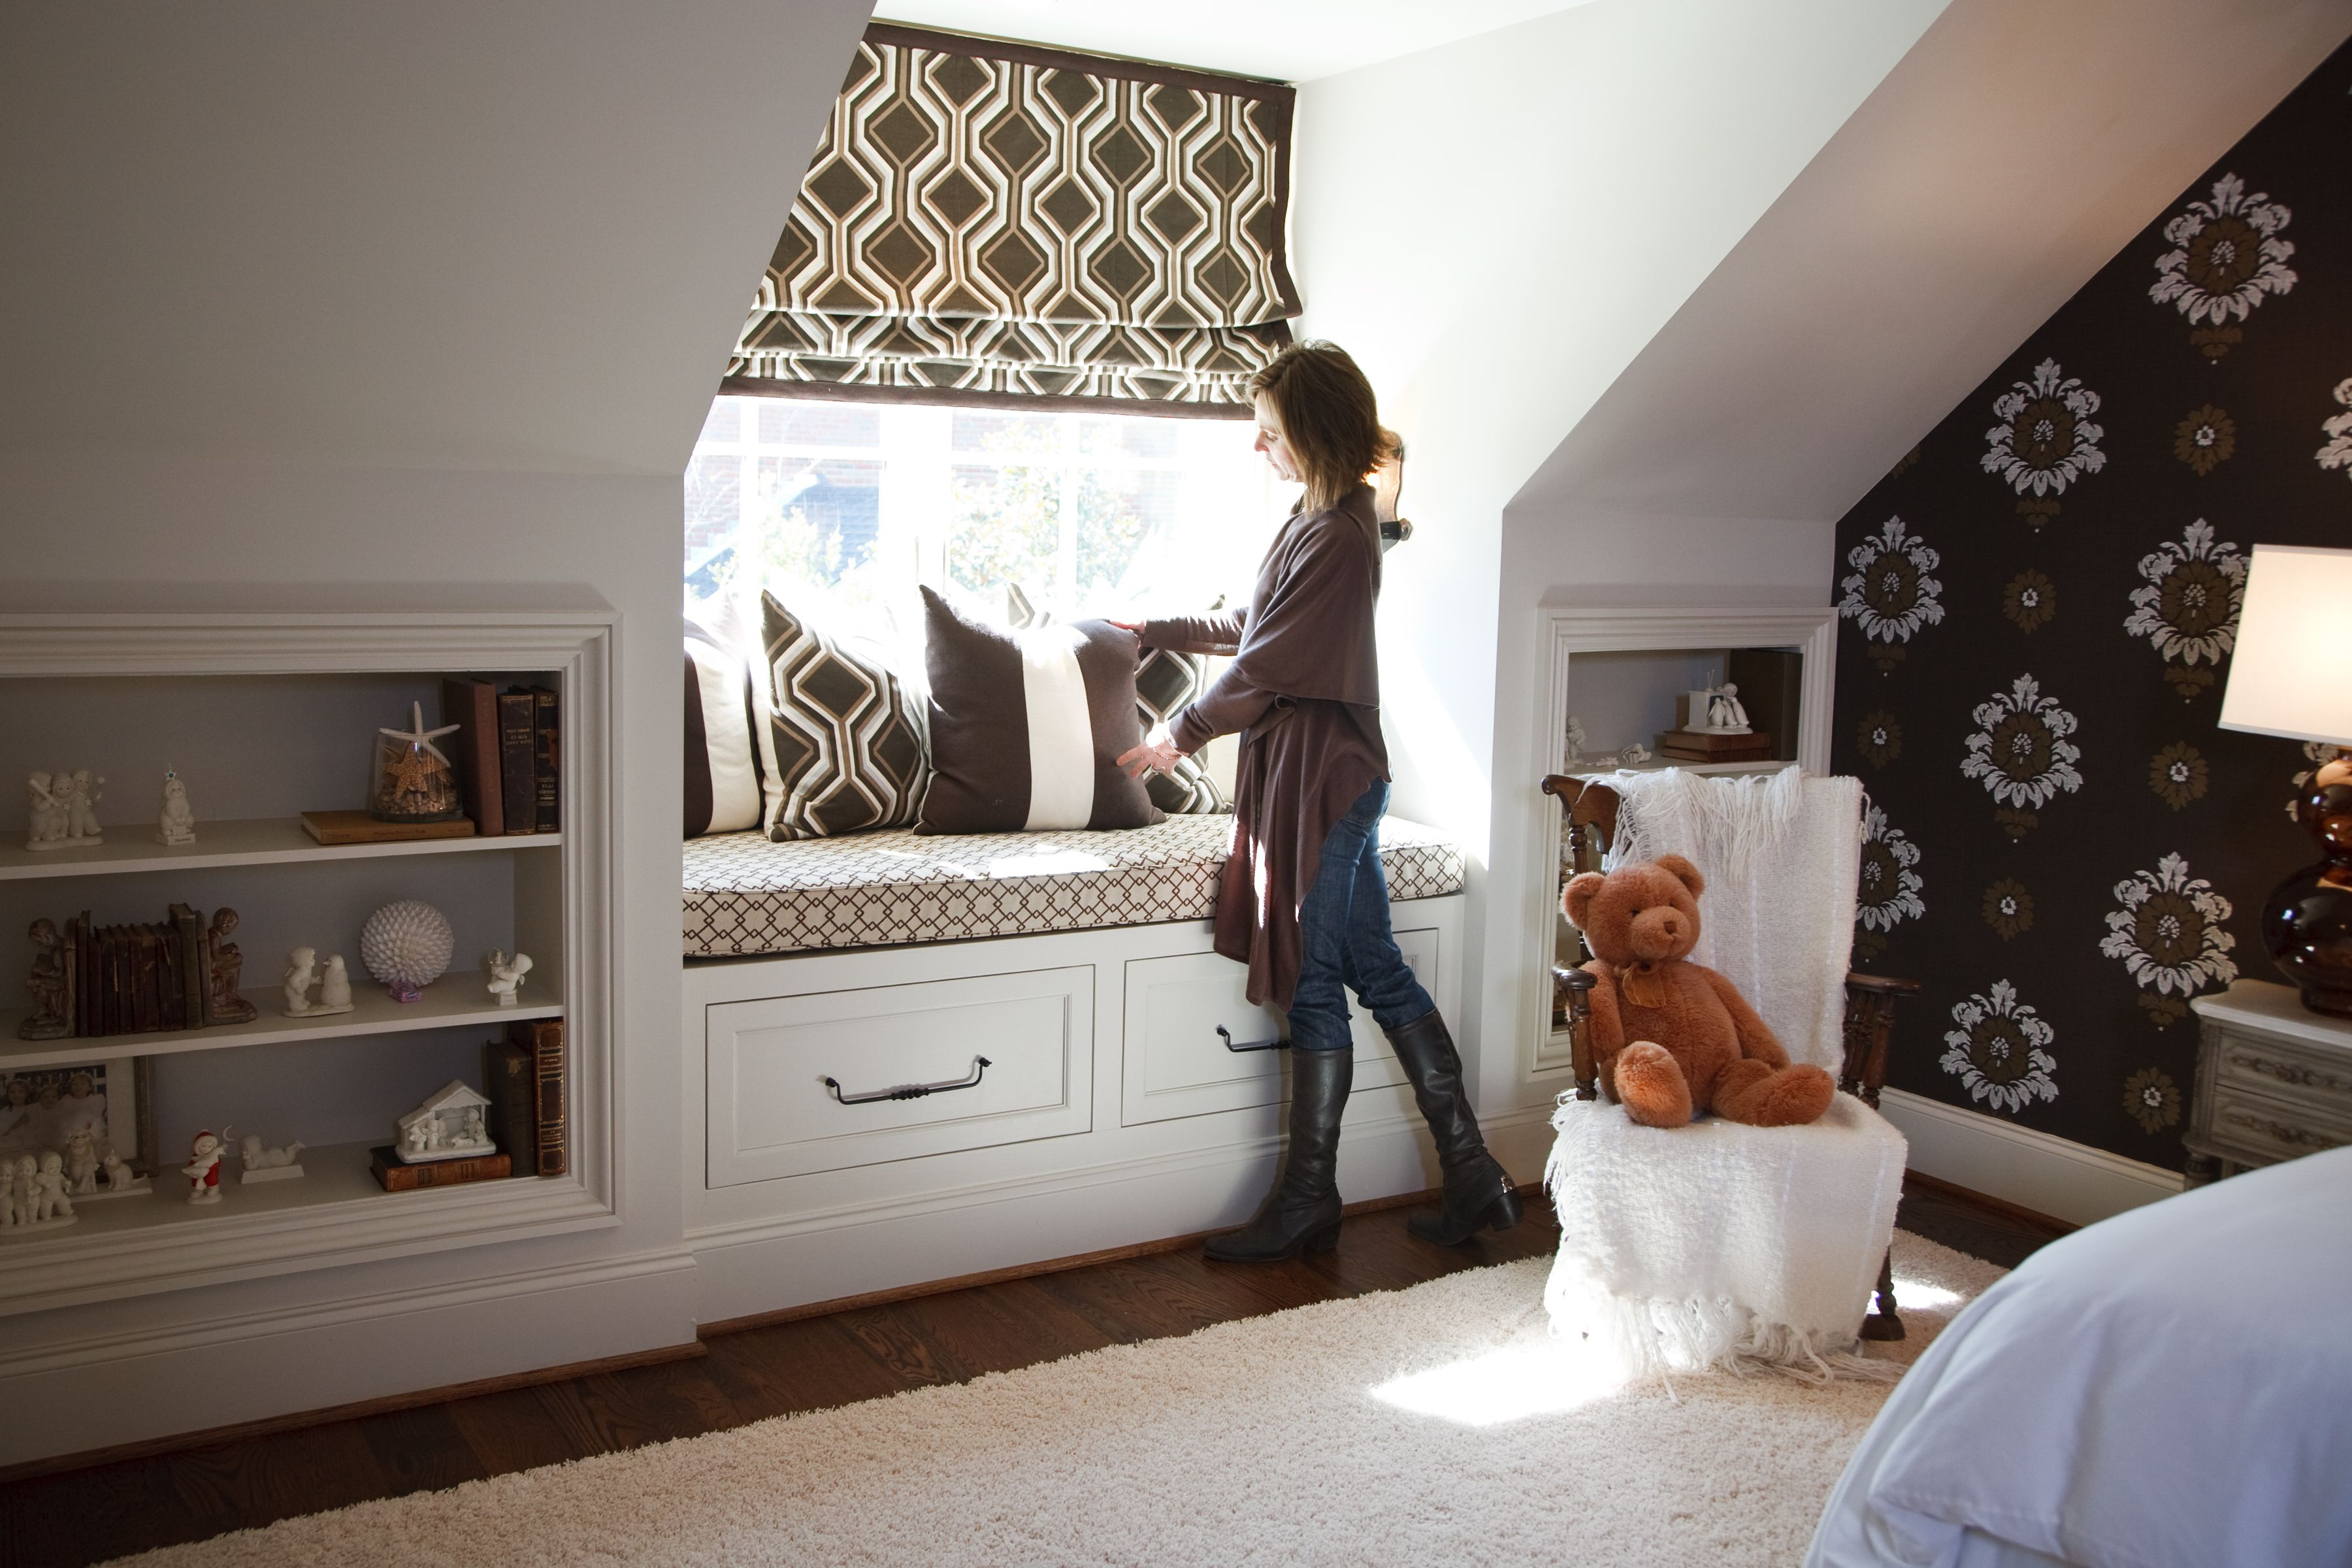 Fun Graphic Patterns In Neutral Tones For Boys Room, Window